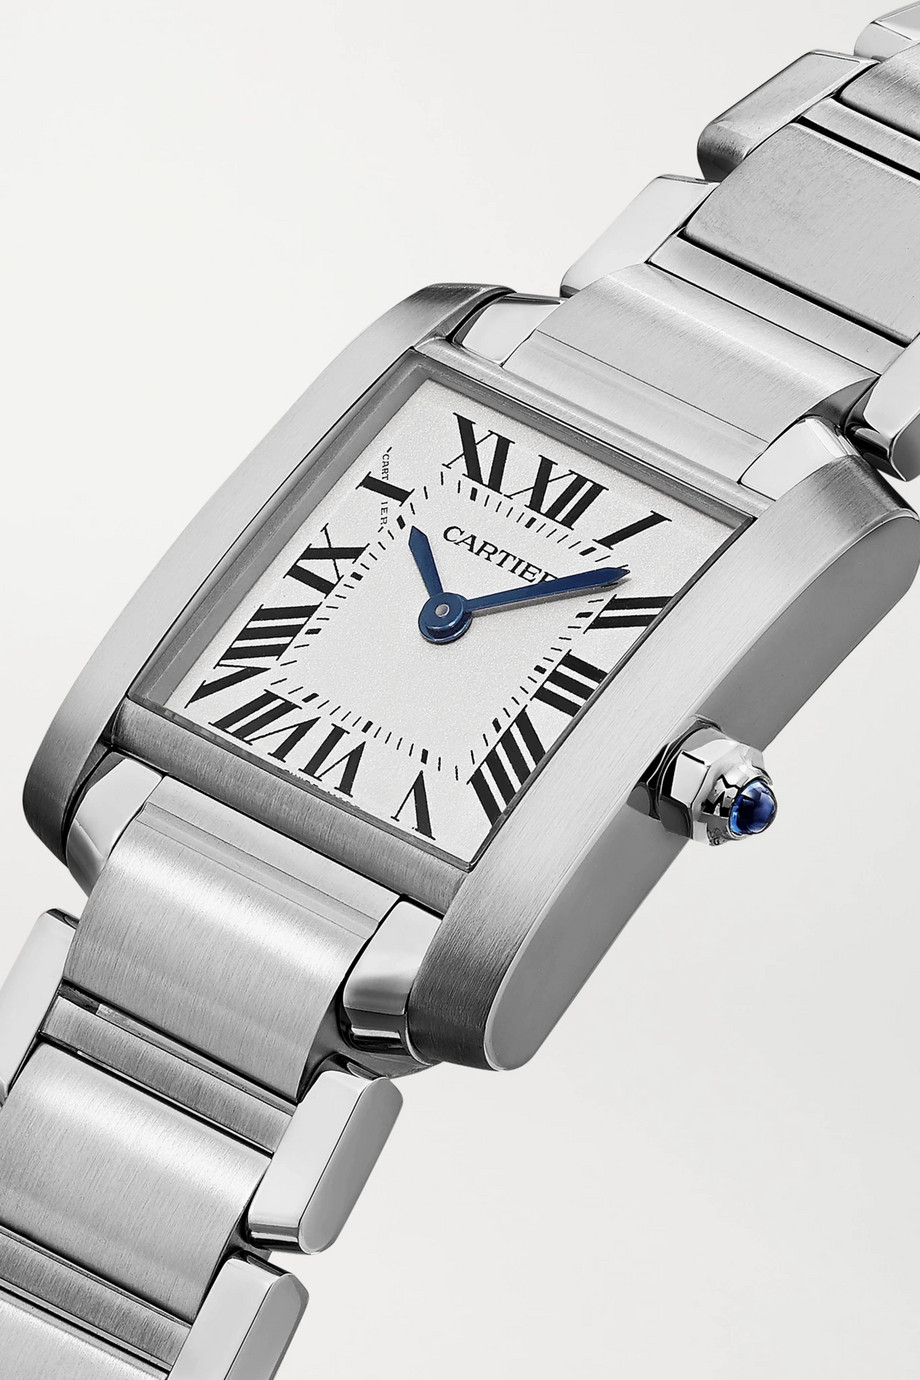 Cartier Tank Française 20mm small stainless steel watch